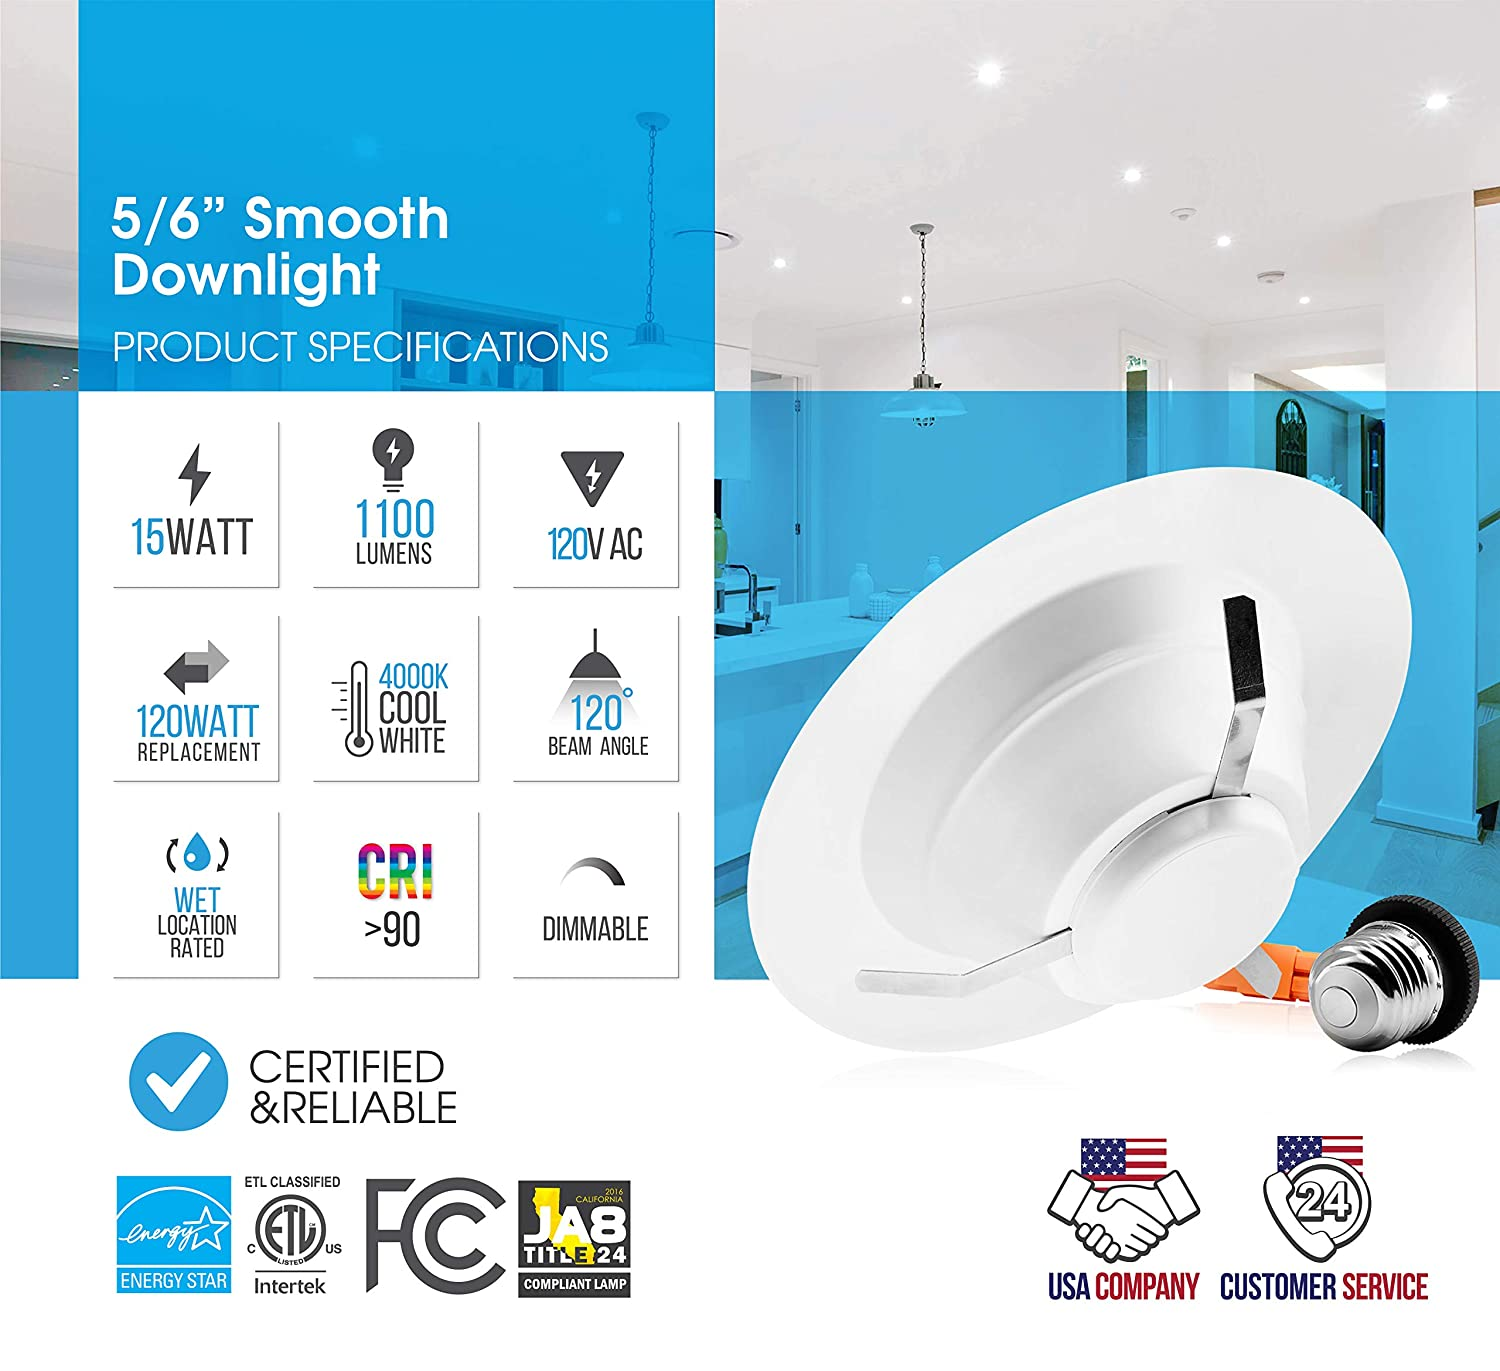 LED Trim Day Light 15W 1100lm LED Ceiling Down Light 12 Pack 5000K 1100Lm Parmida EASY INSTALLATION ENERGY STAR /& ETL 5//6 inch Dimmable LED Recessed Retrofit Downlight 120W Replacement